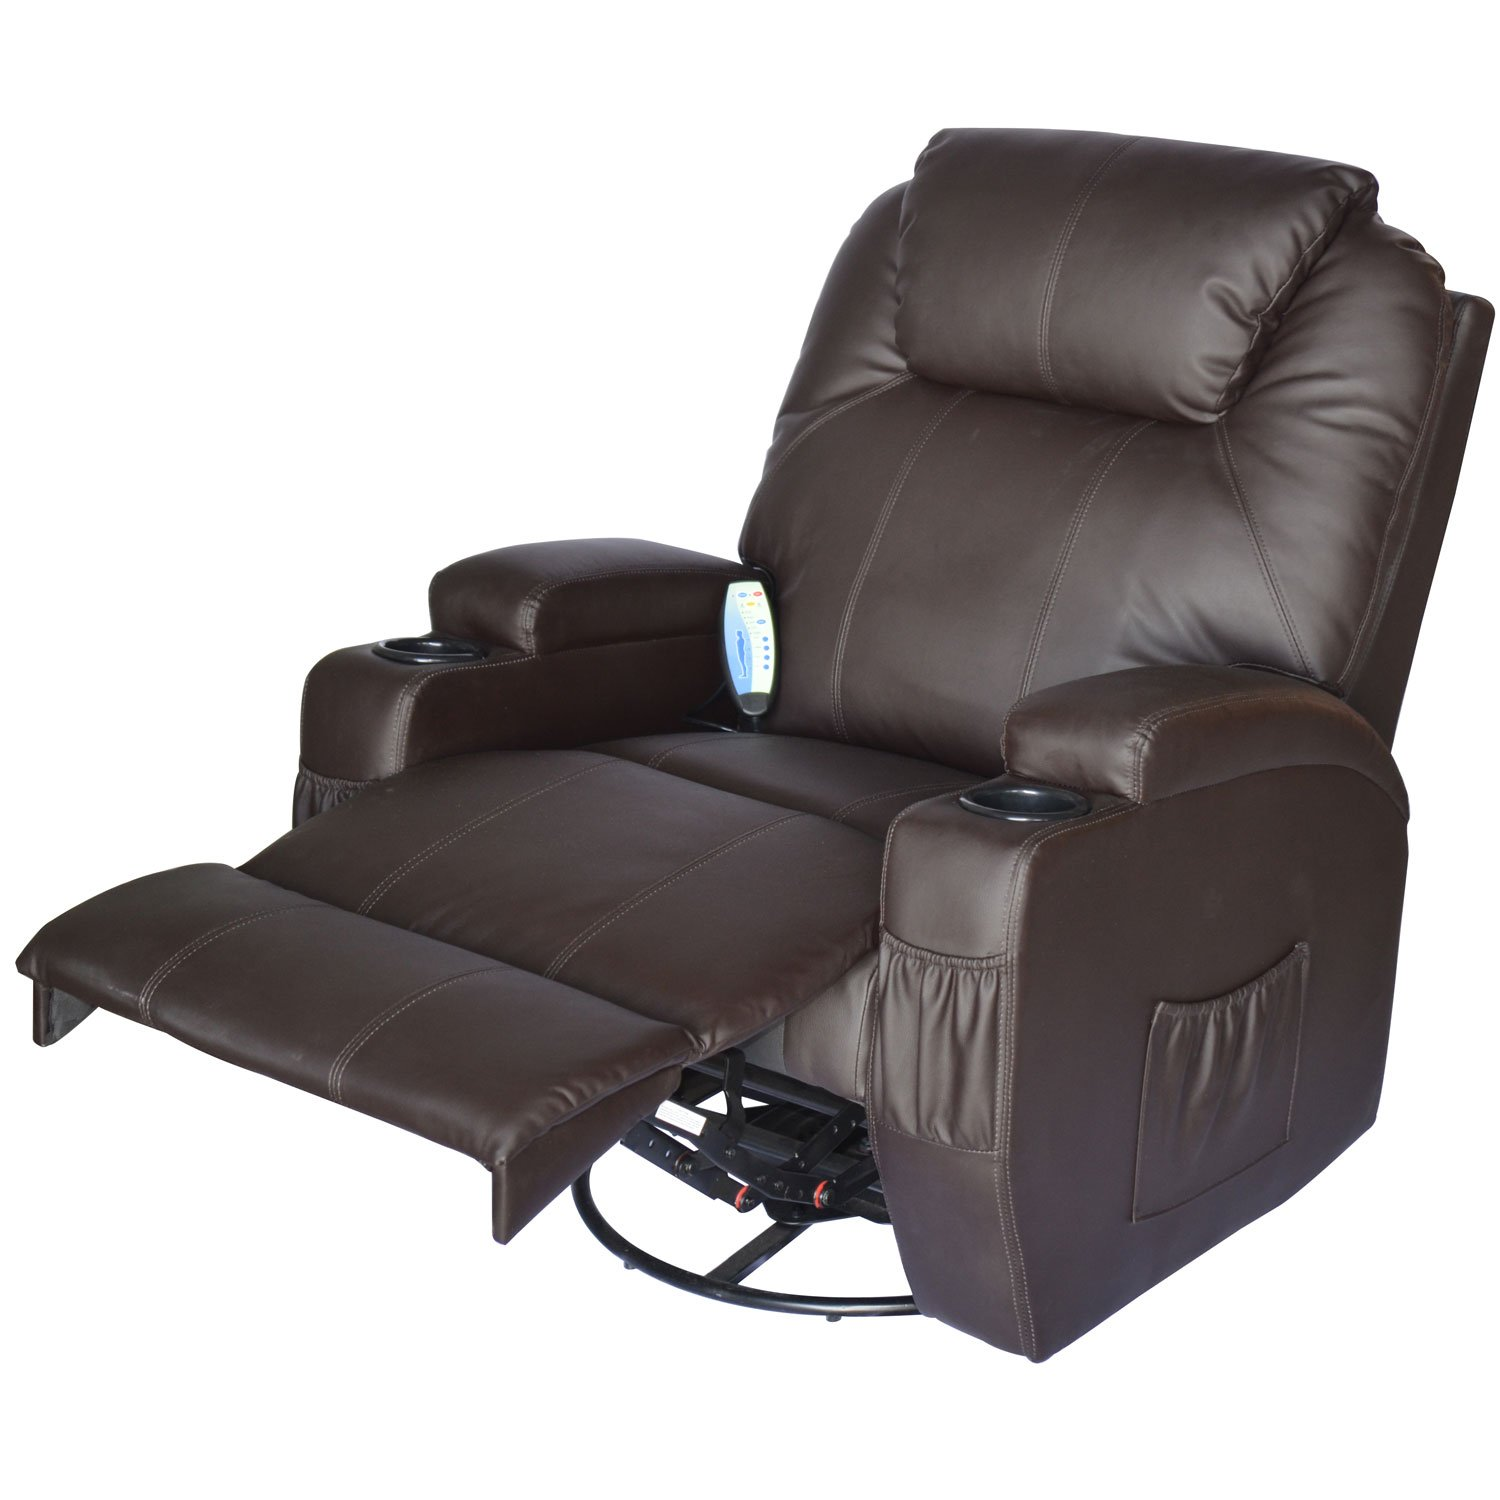 Hom Luxury Leather Recliner Sofa Chair Cinema Massage Chair